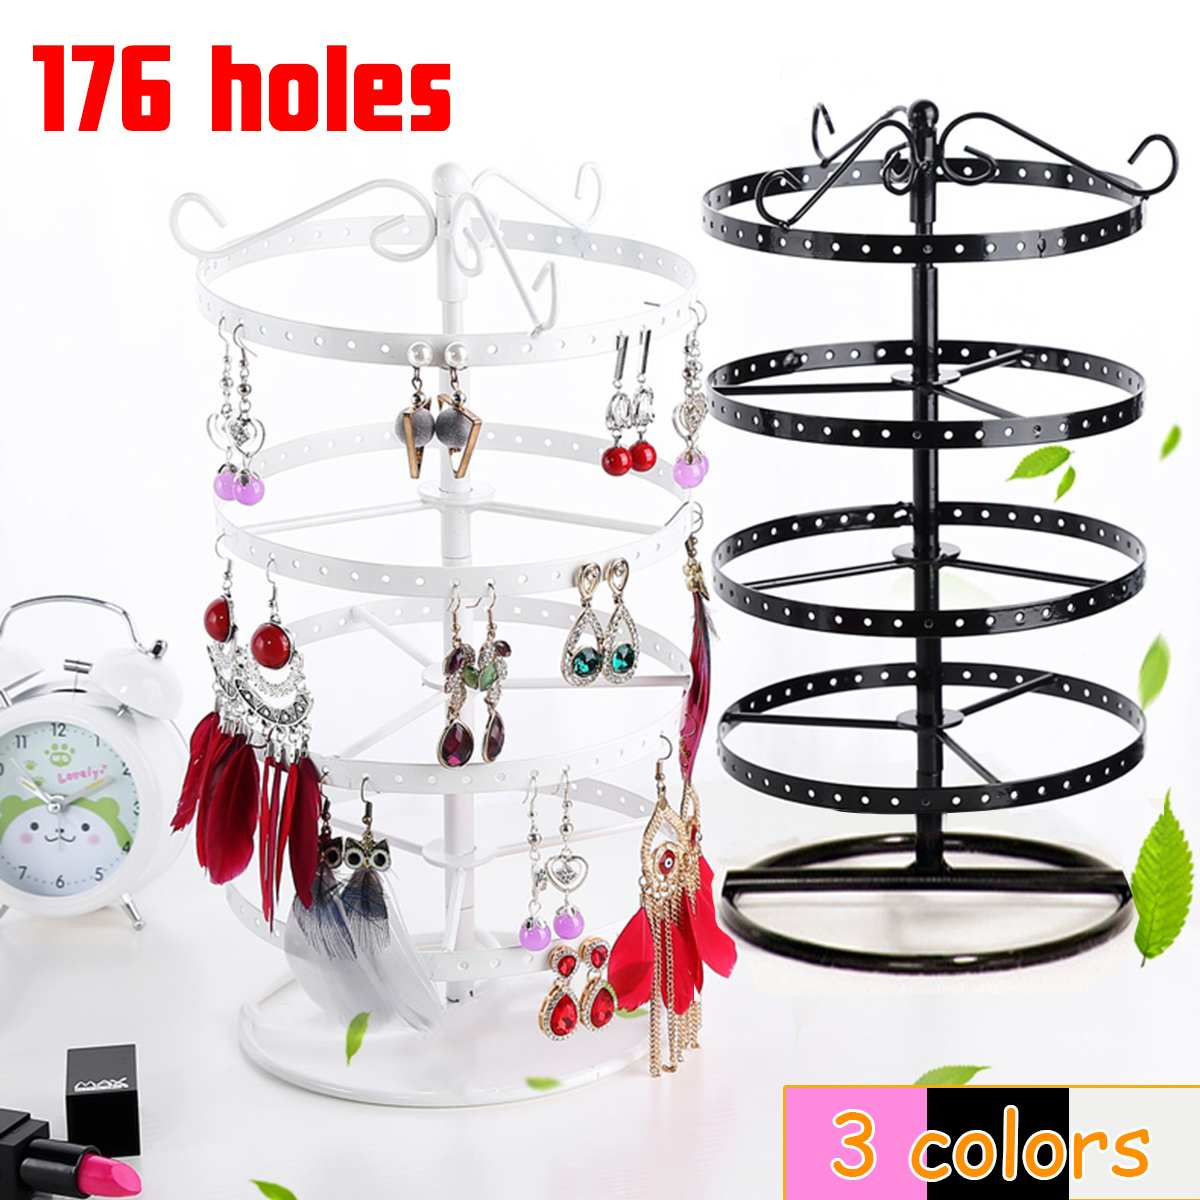 176 Hole Round Earrings Jewelry Display Rack 360 Rotating Ear Studs Stand Organizer Holder Display Showcase Shelf Hot Selling